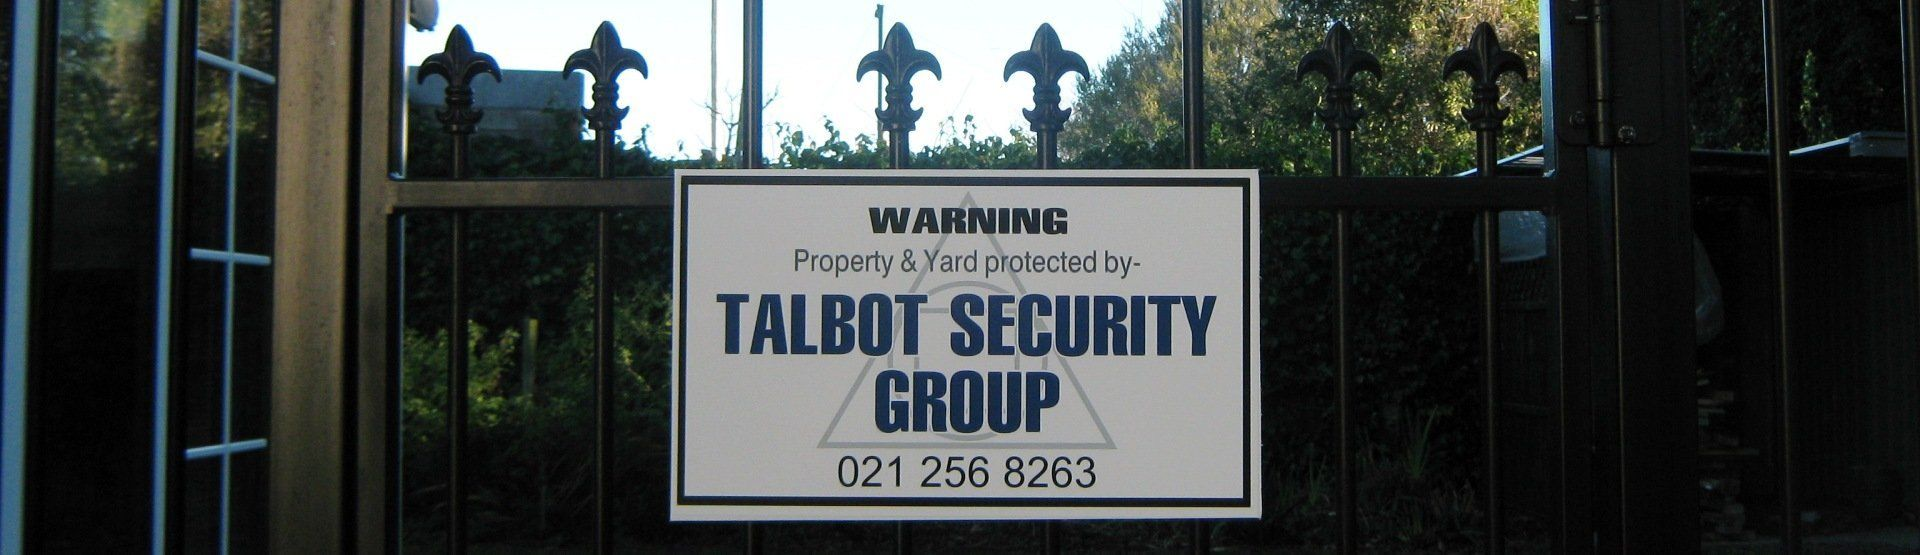 Residential Security Alarms - Talbot Security Group Canterbury